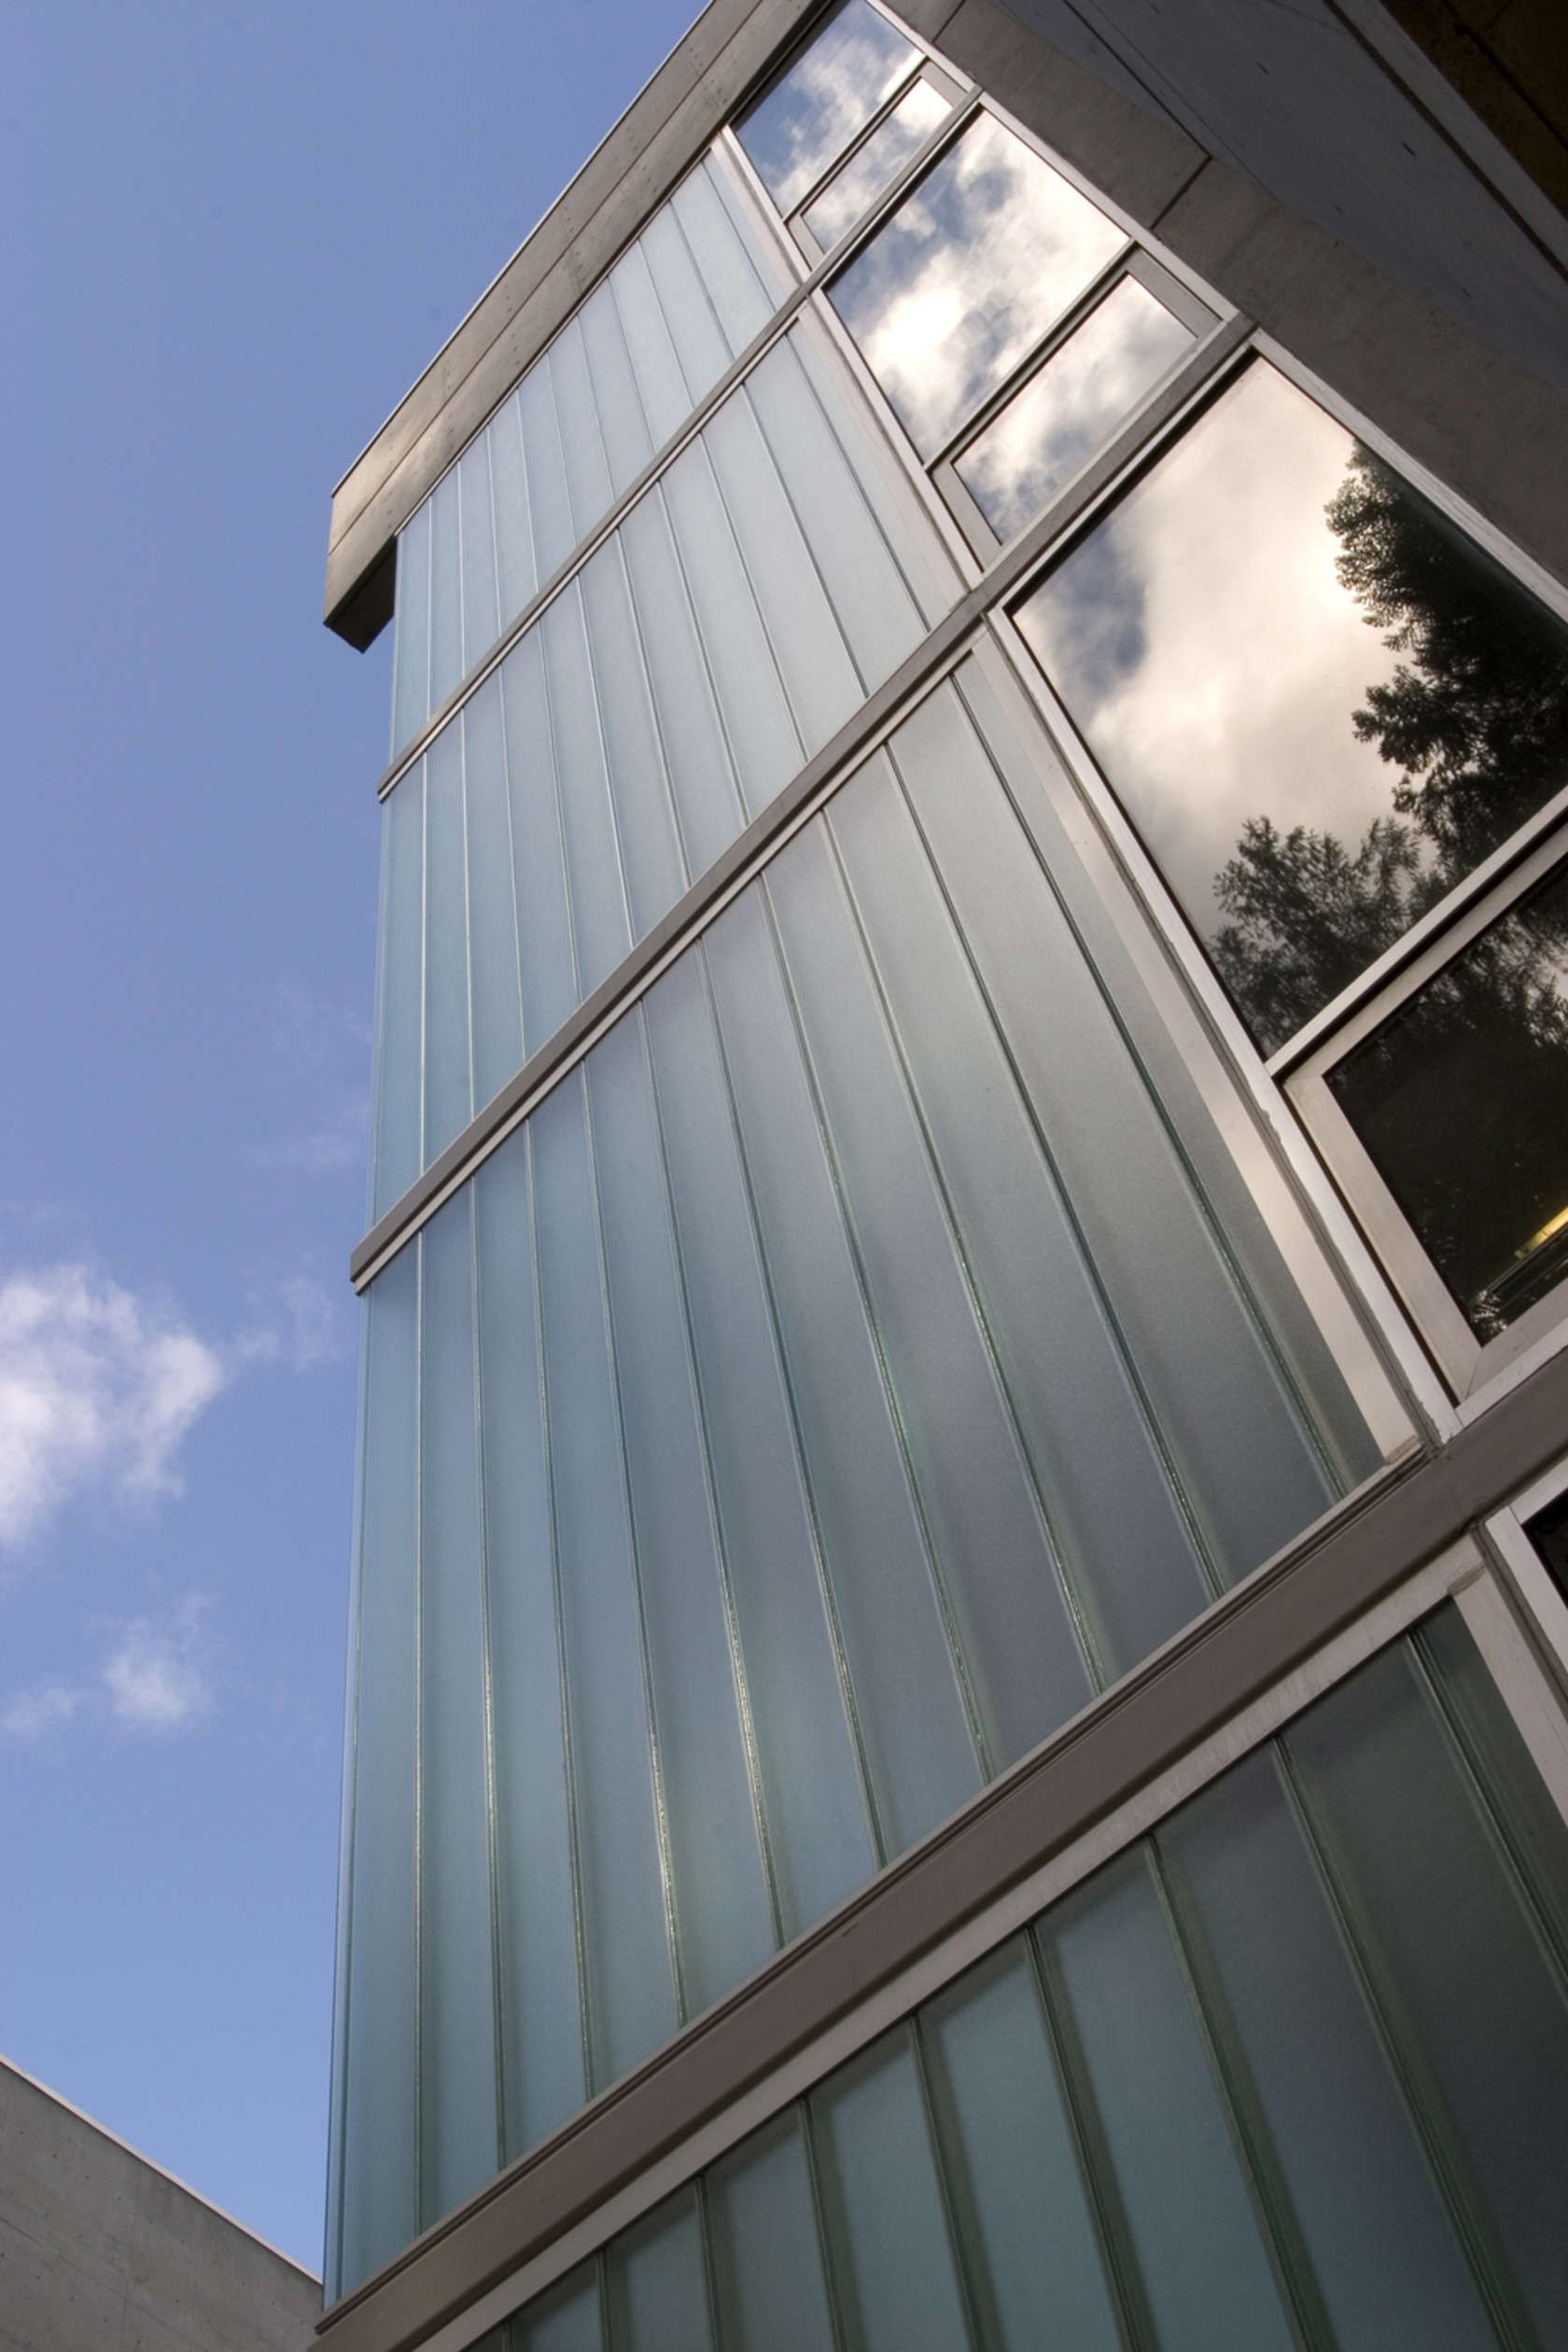 Pilkington Profilit Translucent Channel Glass System Architecture Ceramique Hall